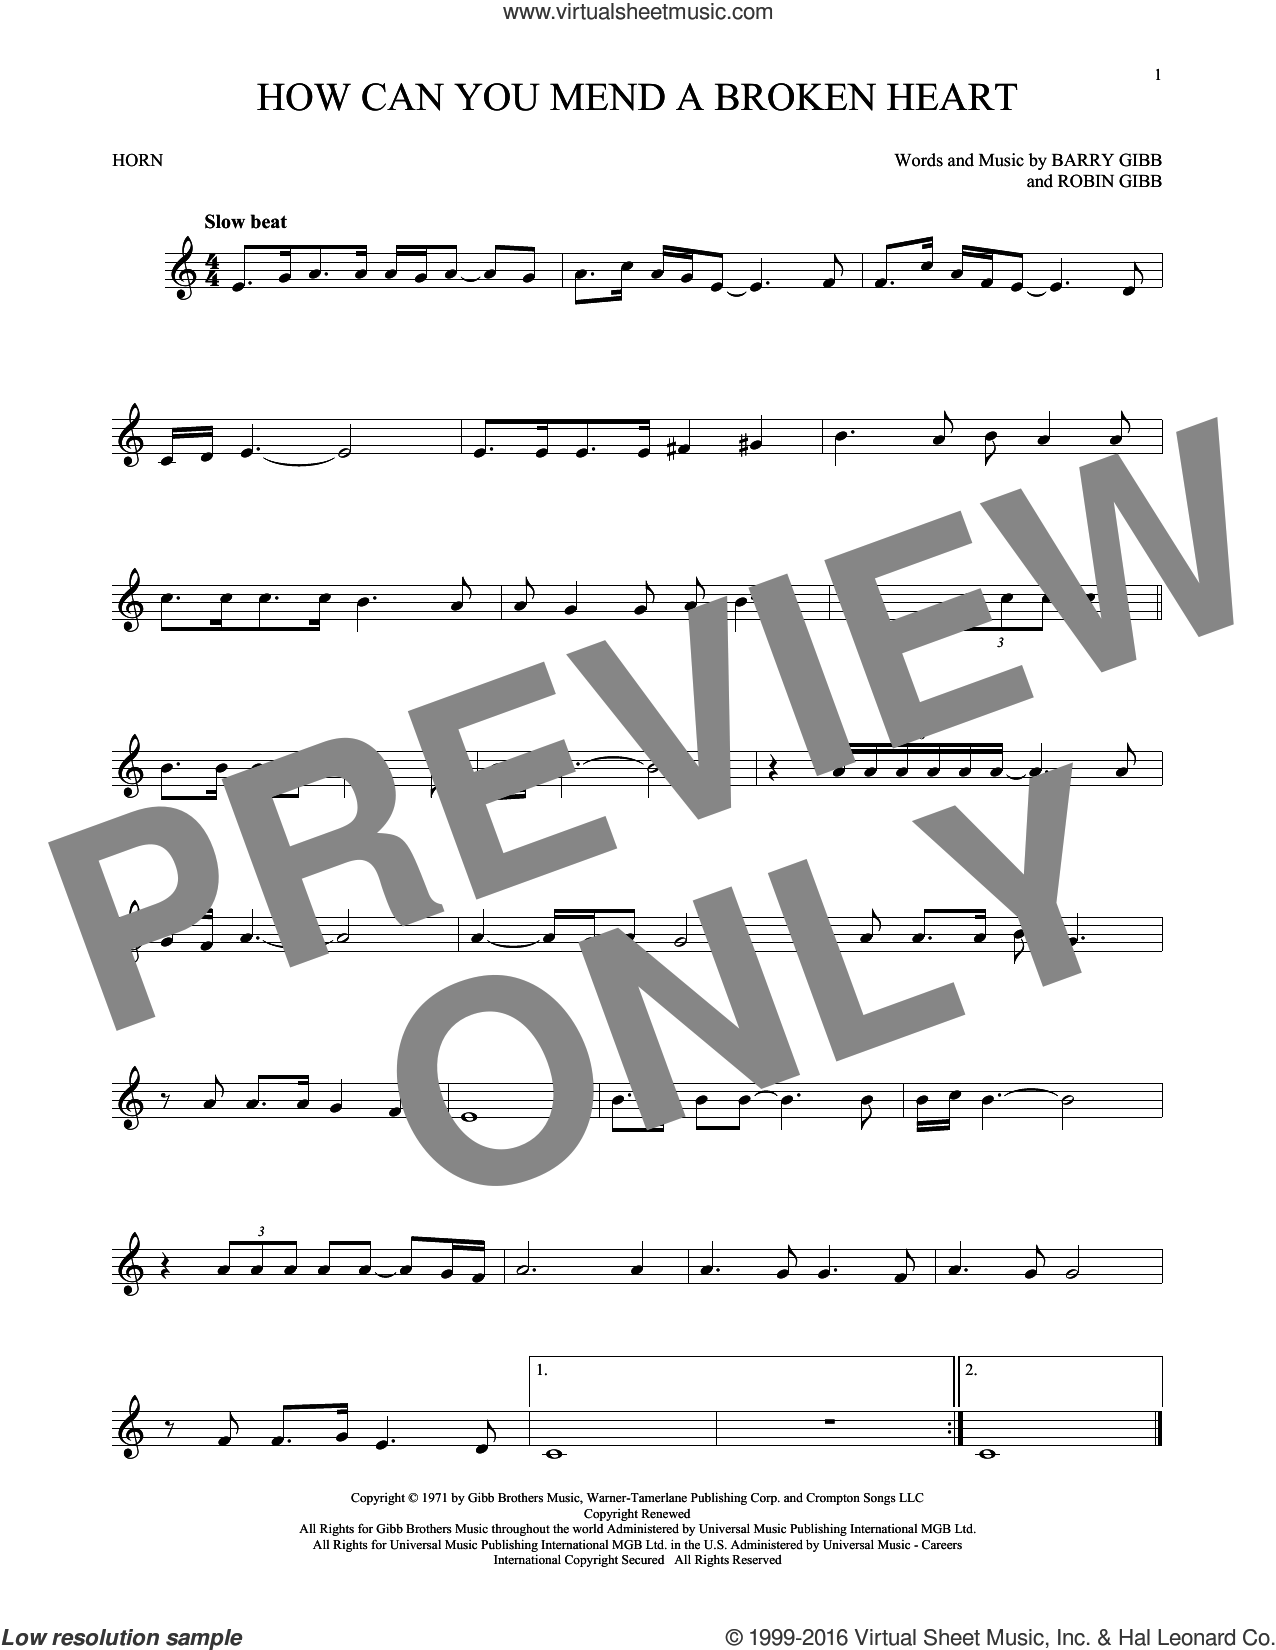 How Can You Mend A Broken Heart sheet music for horn solo by Robin Gibb, Bee Gees and Barry Gibb. Score Image Preview.